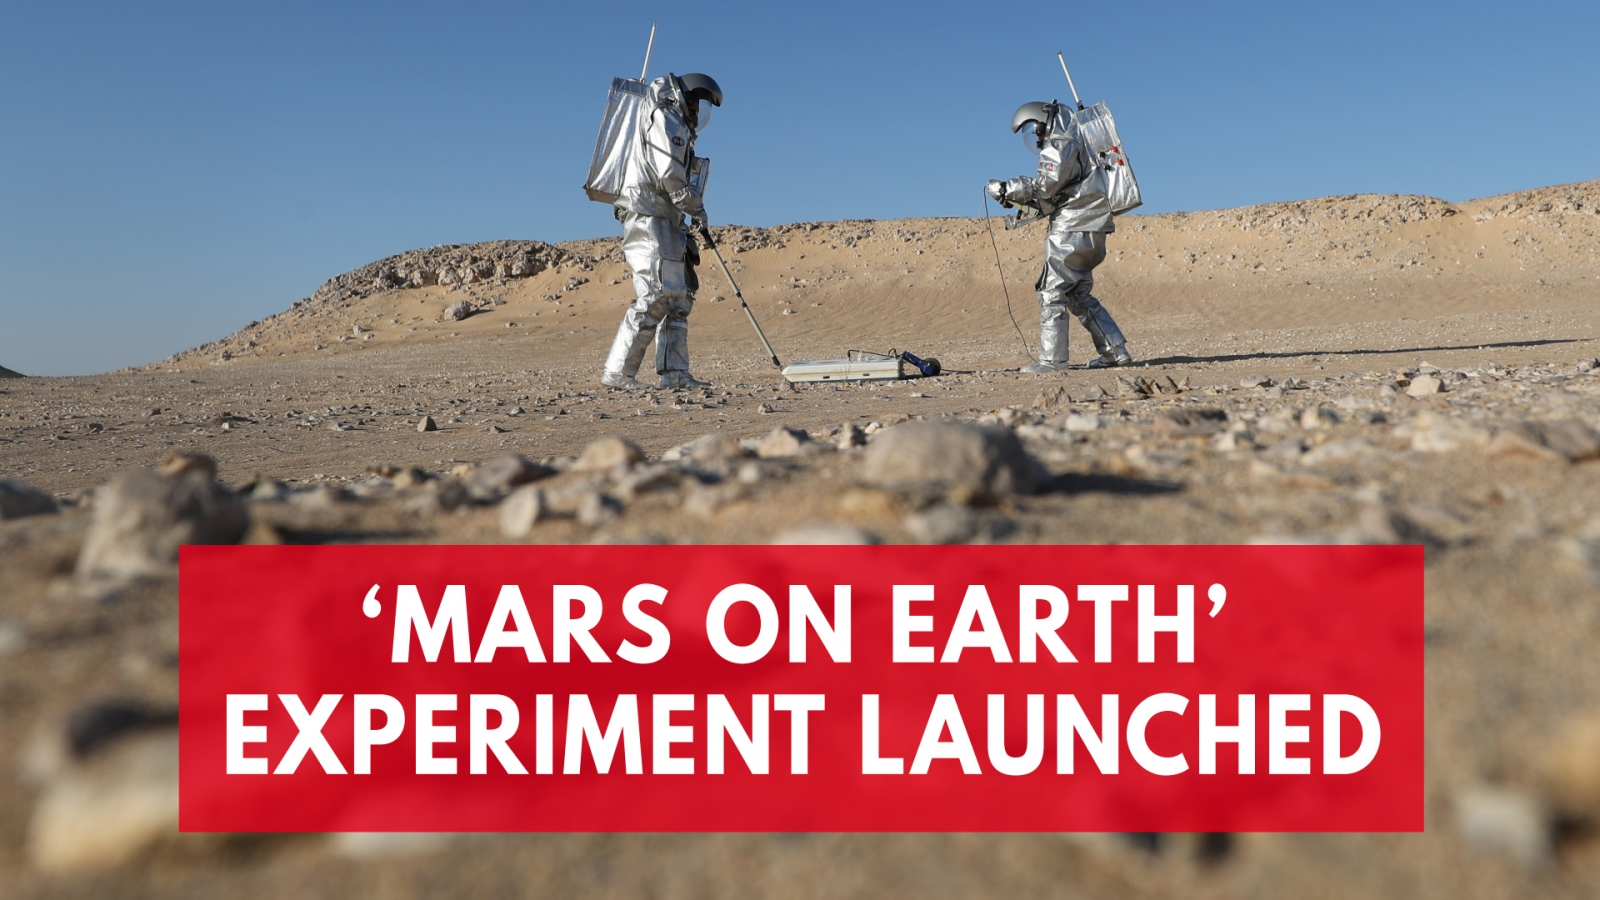 scientists-conduct-experiment-in-mars-simulation-center-in-oman-desert